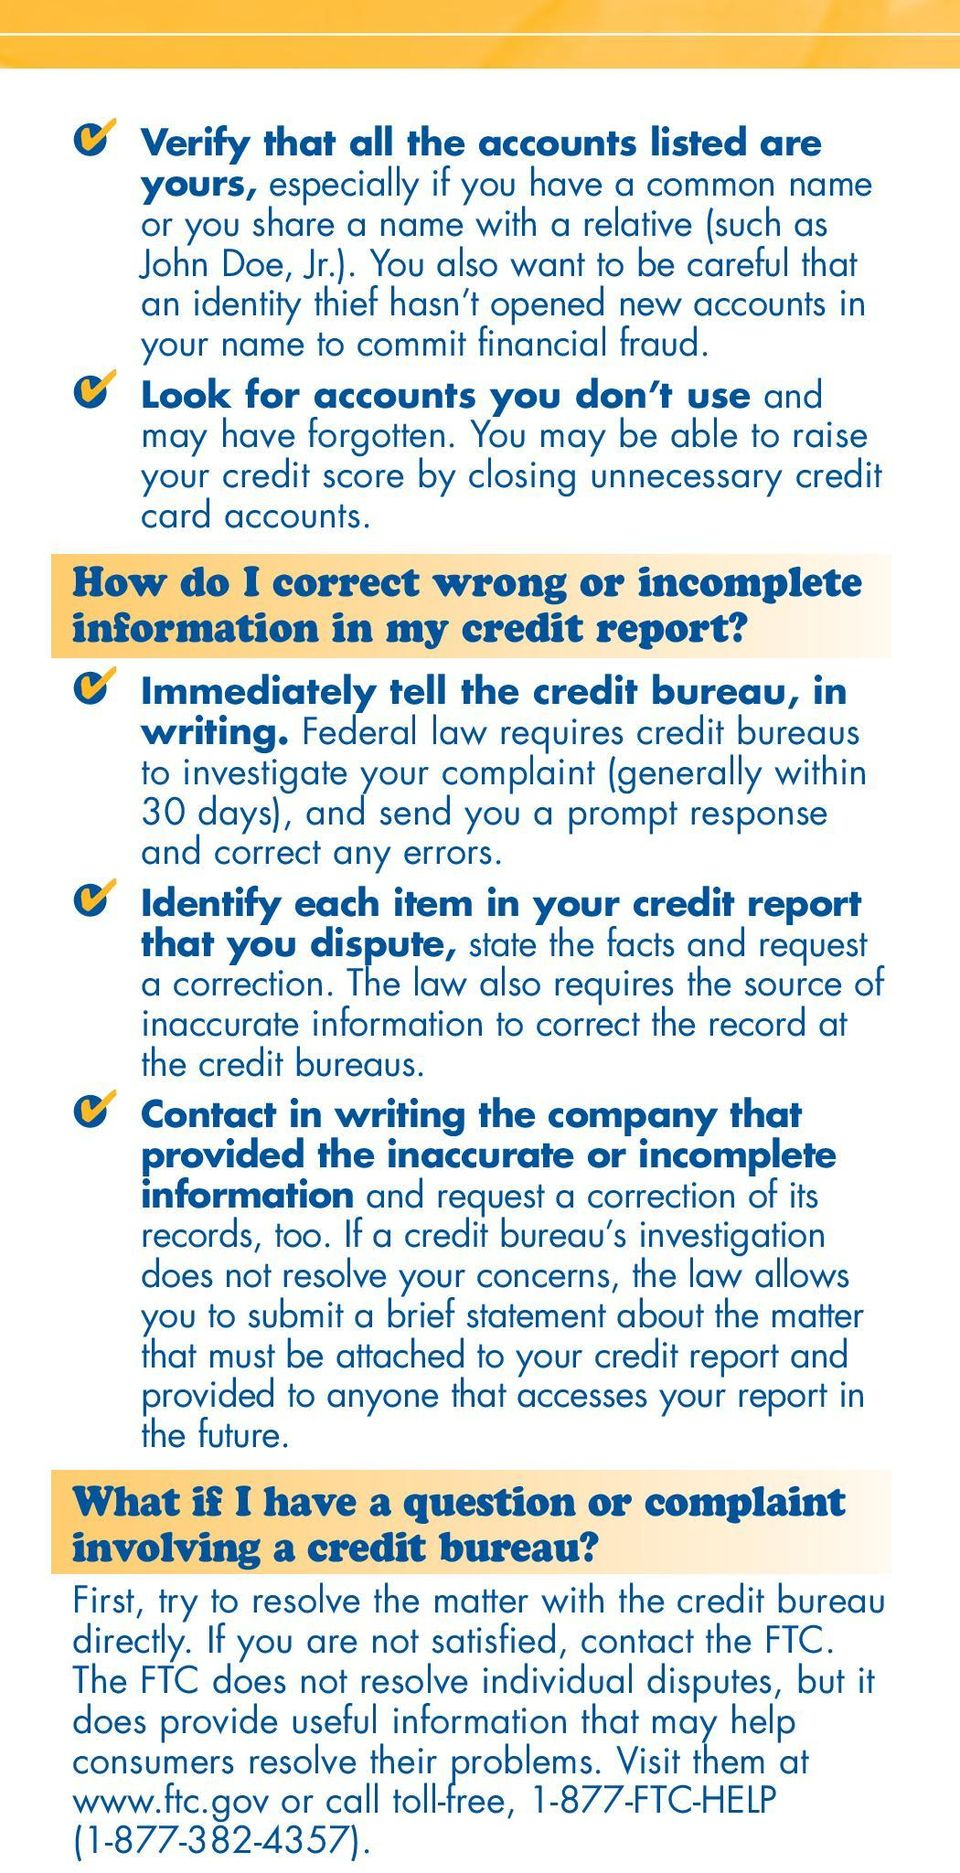 You may be able to raise your credit score by closing unnecessary credit card accounts. How do I correct wrong or incomplete information in my credit report?